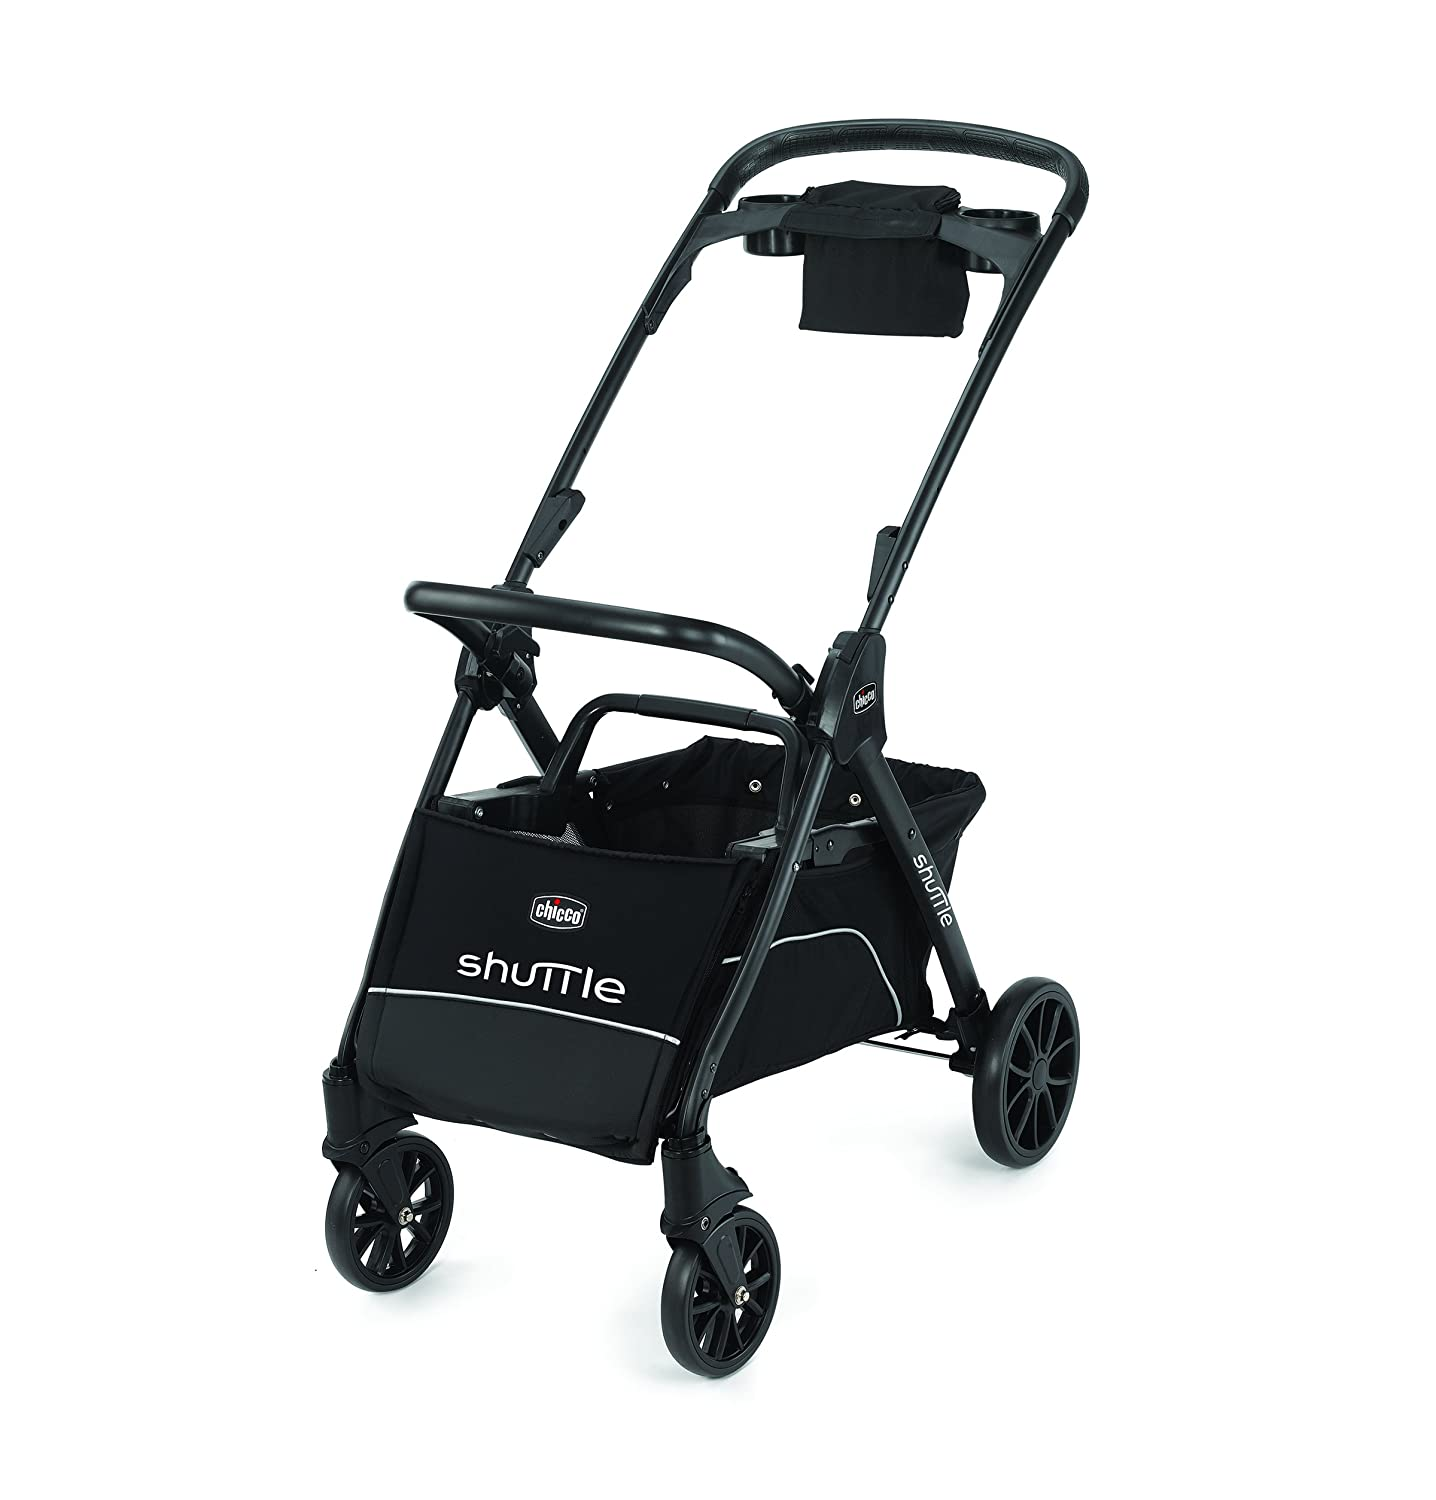 Chicco Shuttle Frame Stroller, Black 06079662950070